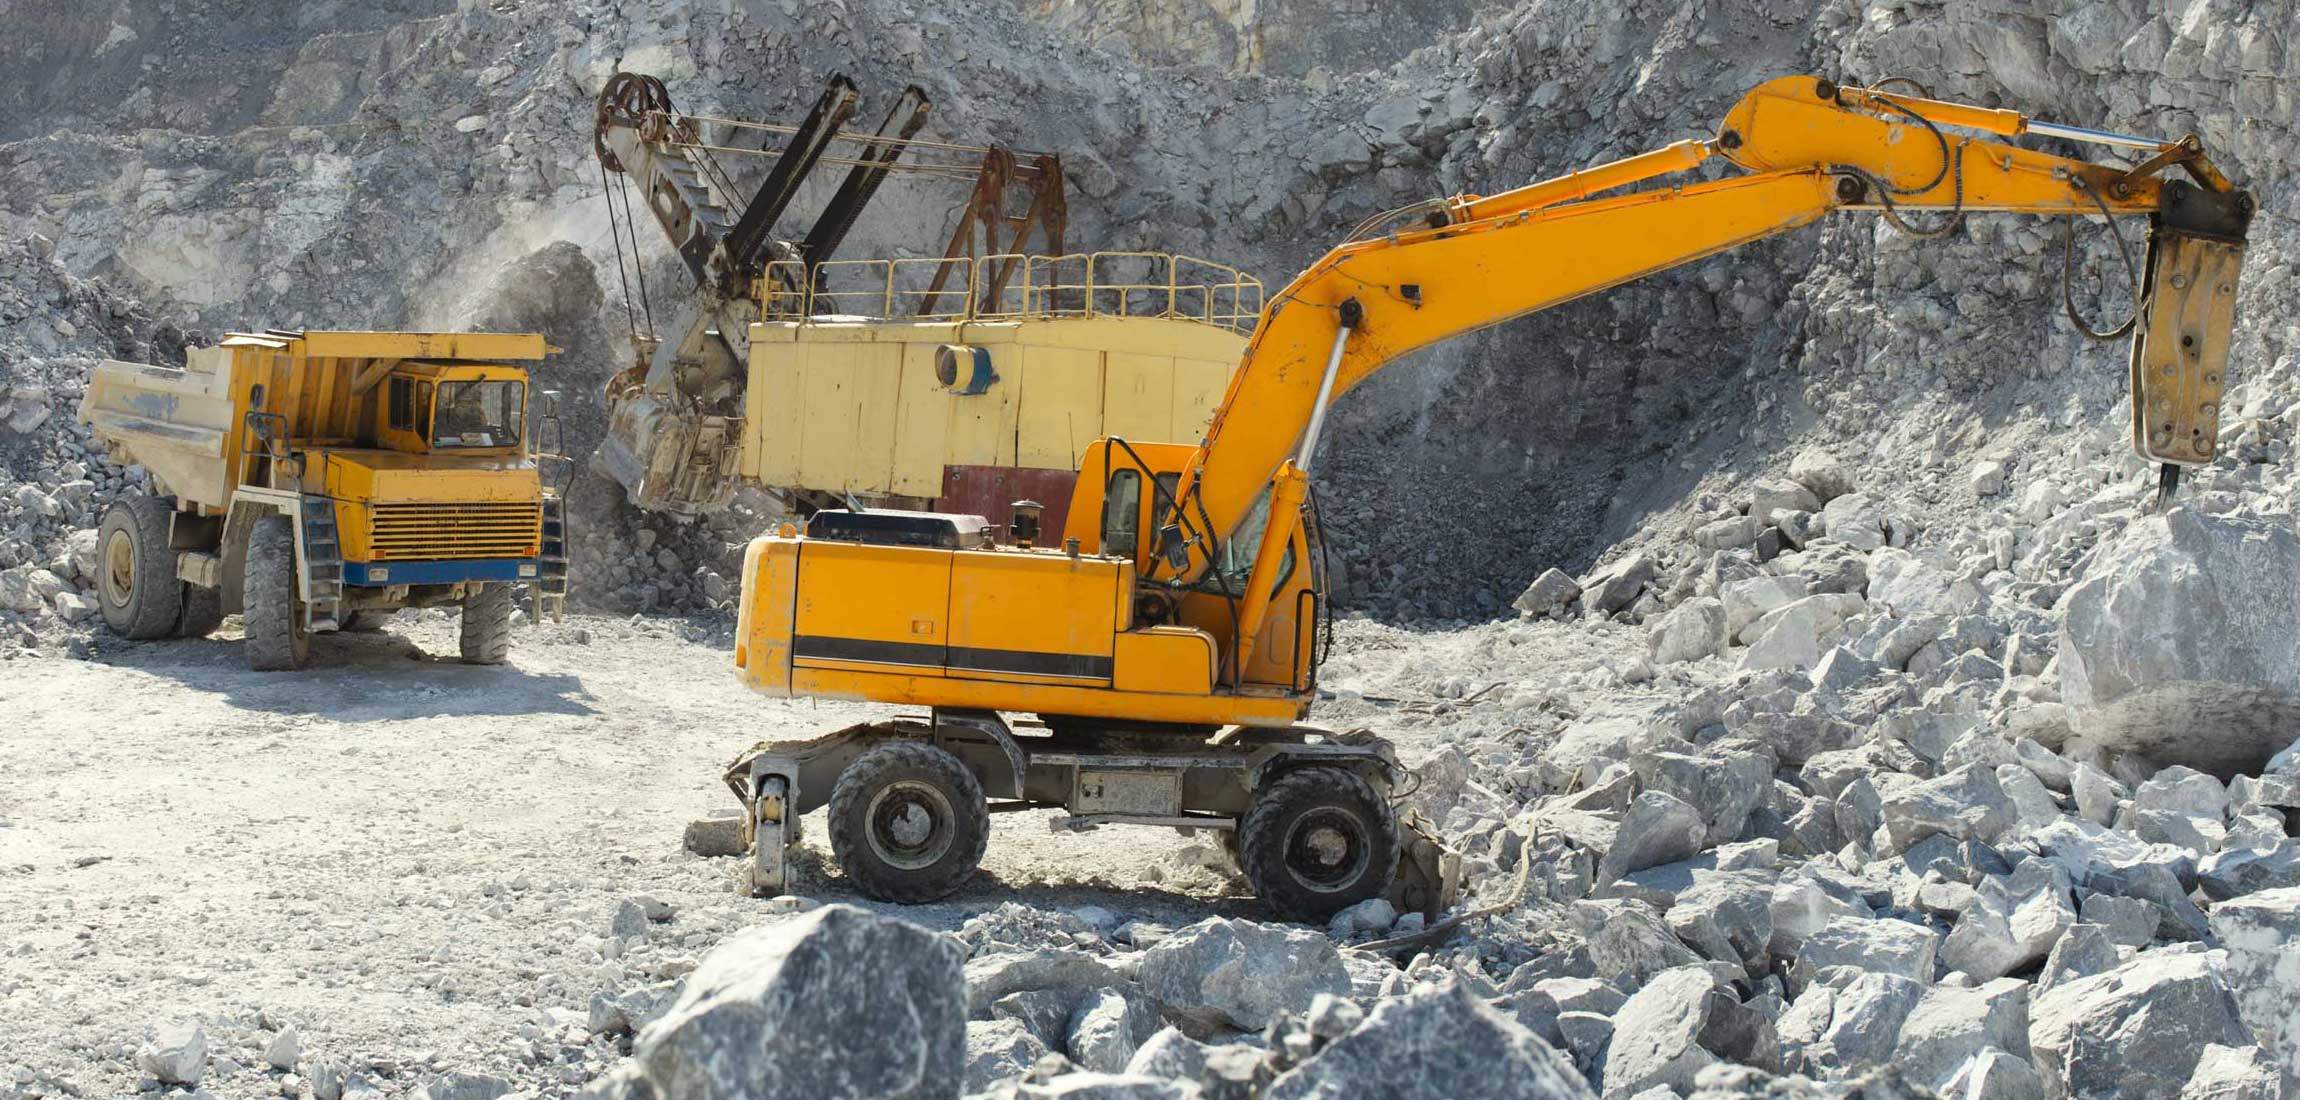 MT Mining Machinery